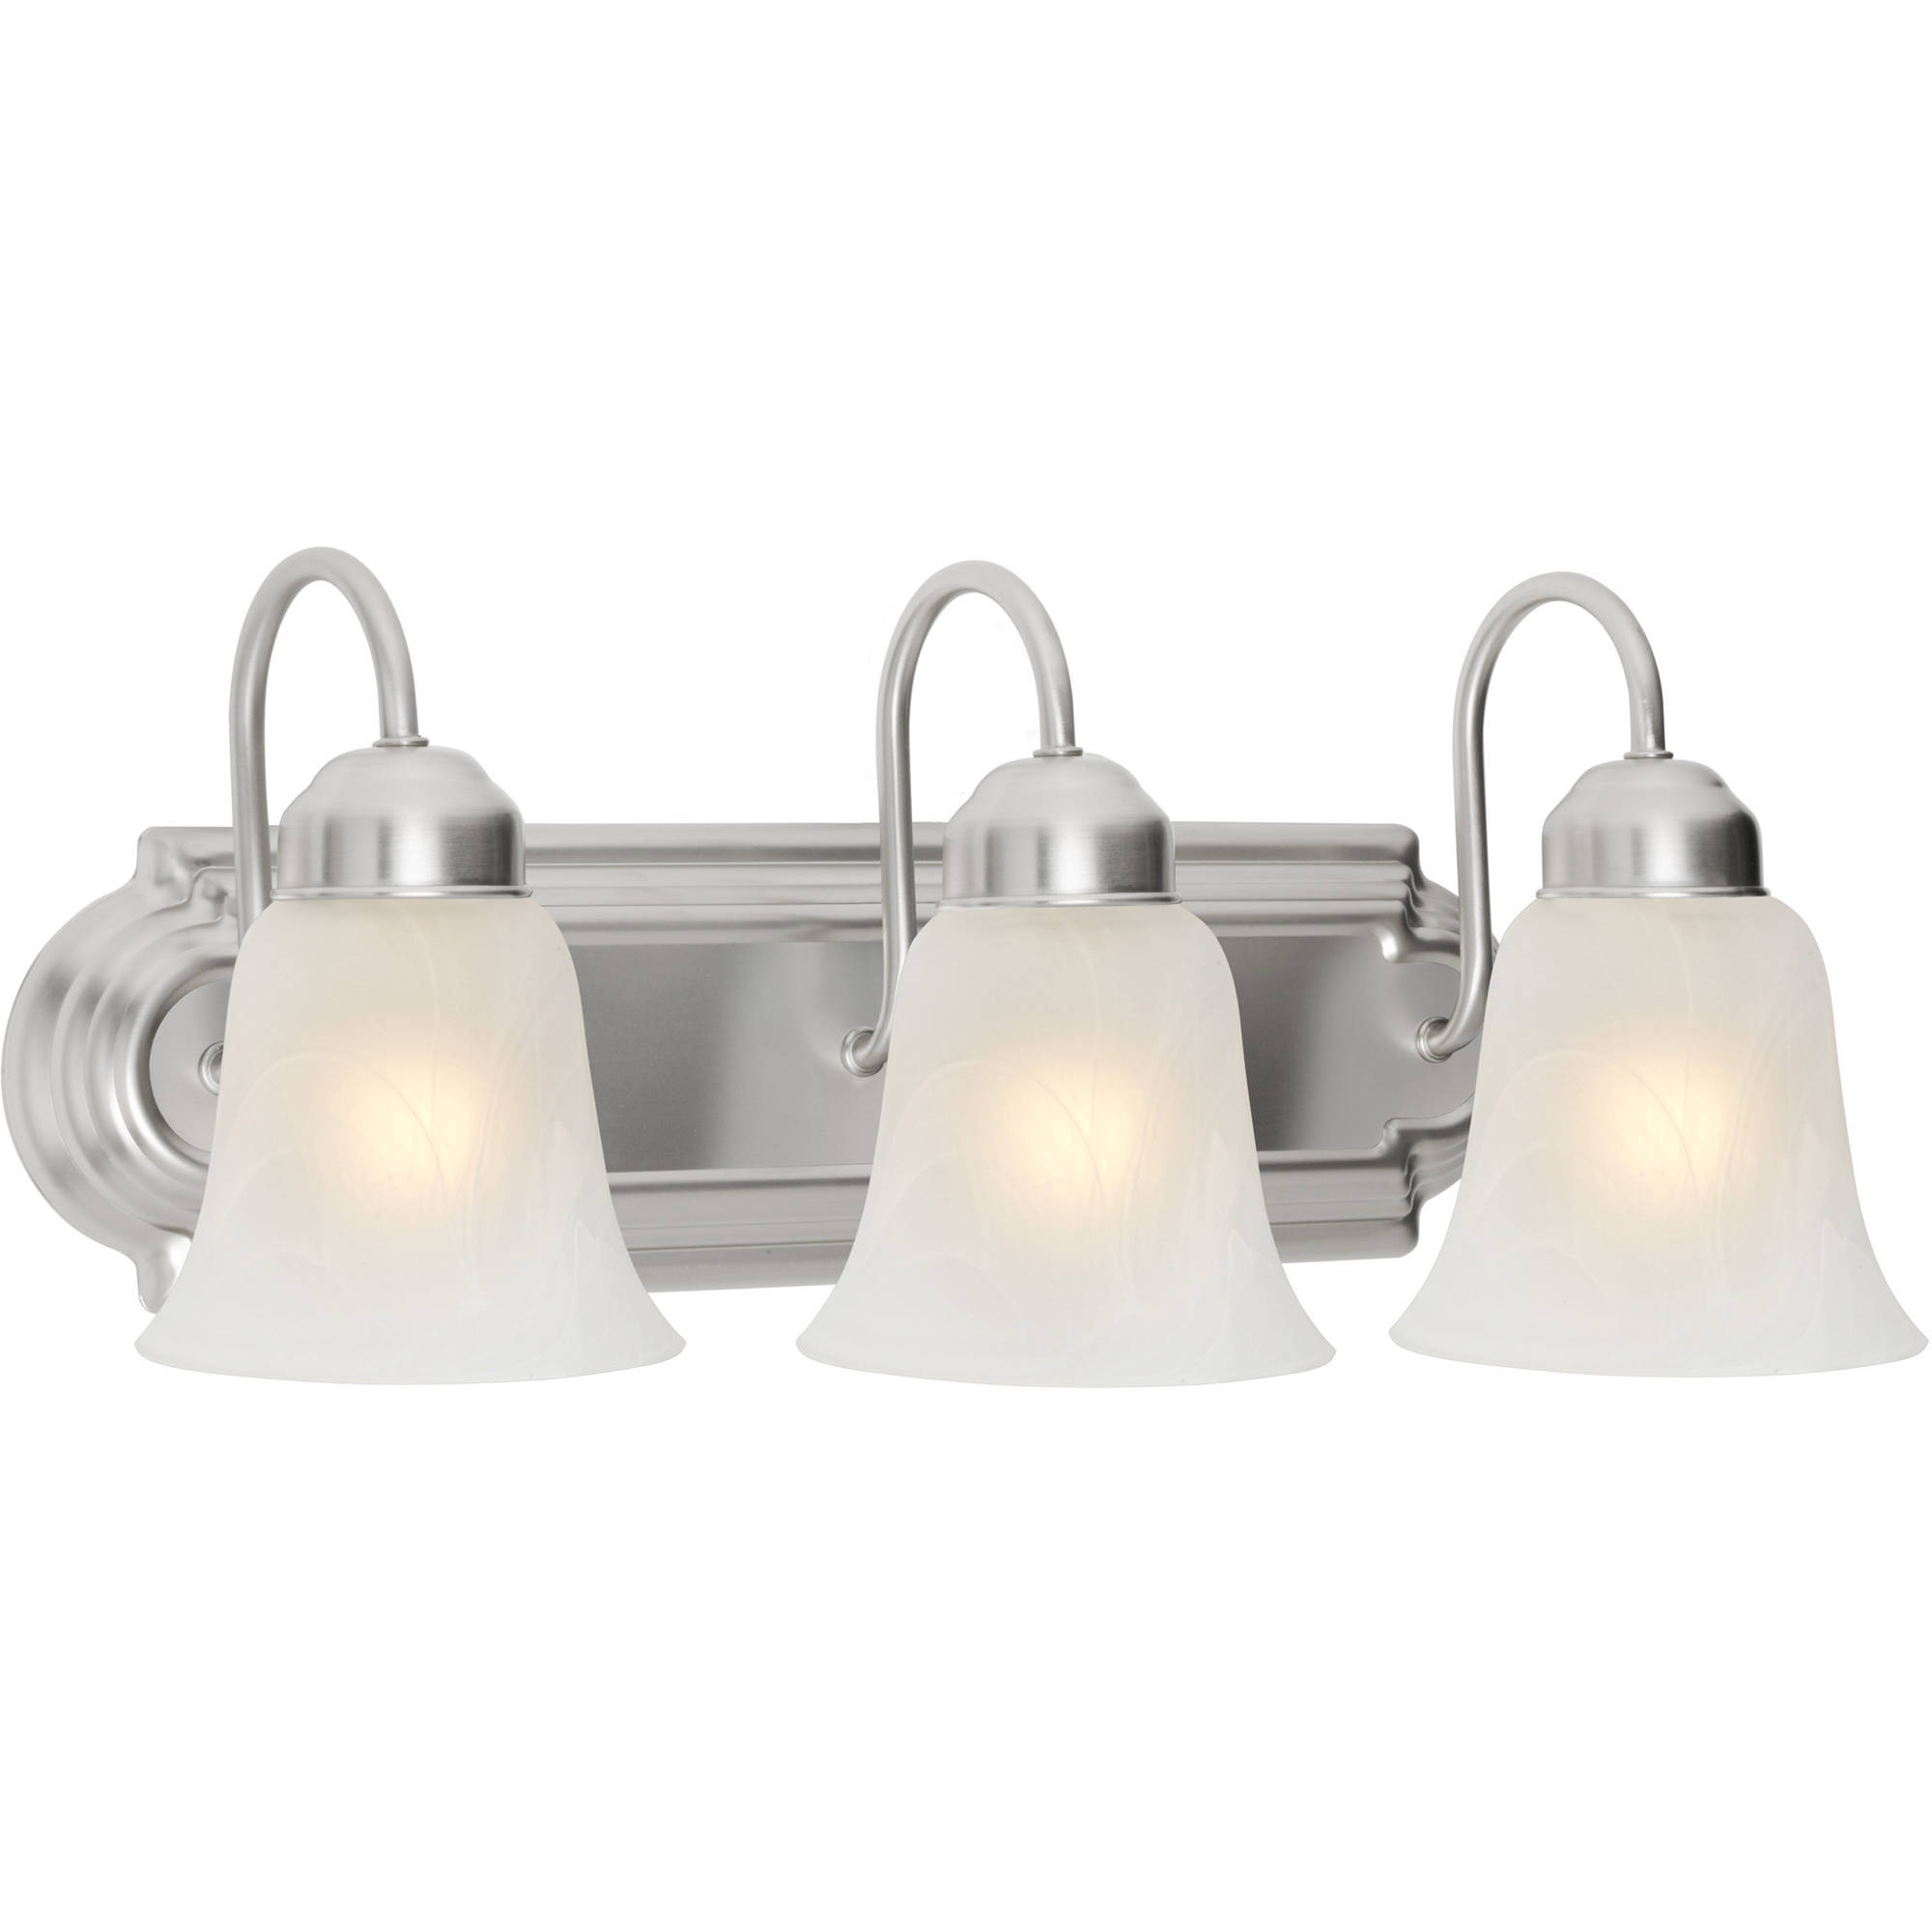 Bathroom Lighting Fixtures Walmart chapter 3-light bathroom vanity light, satin nickel - walmart